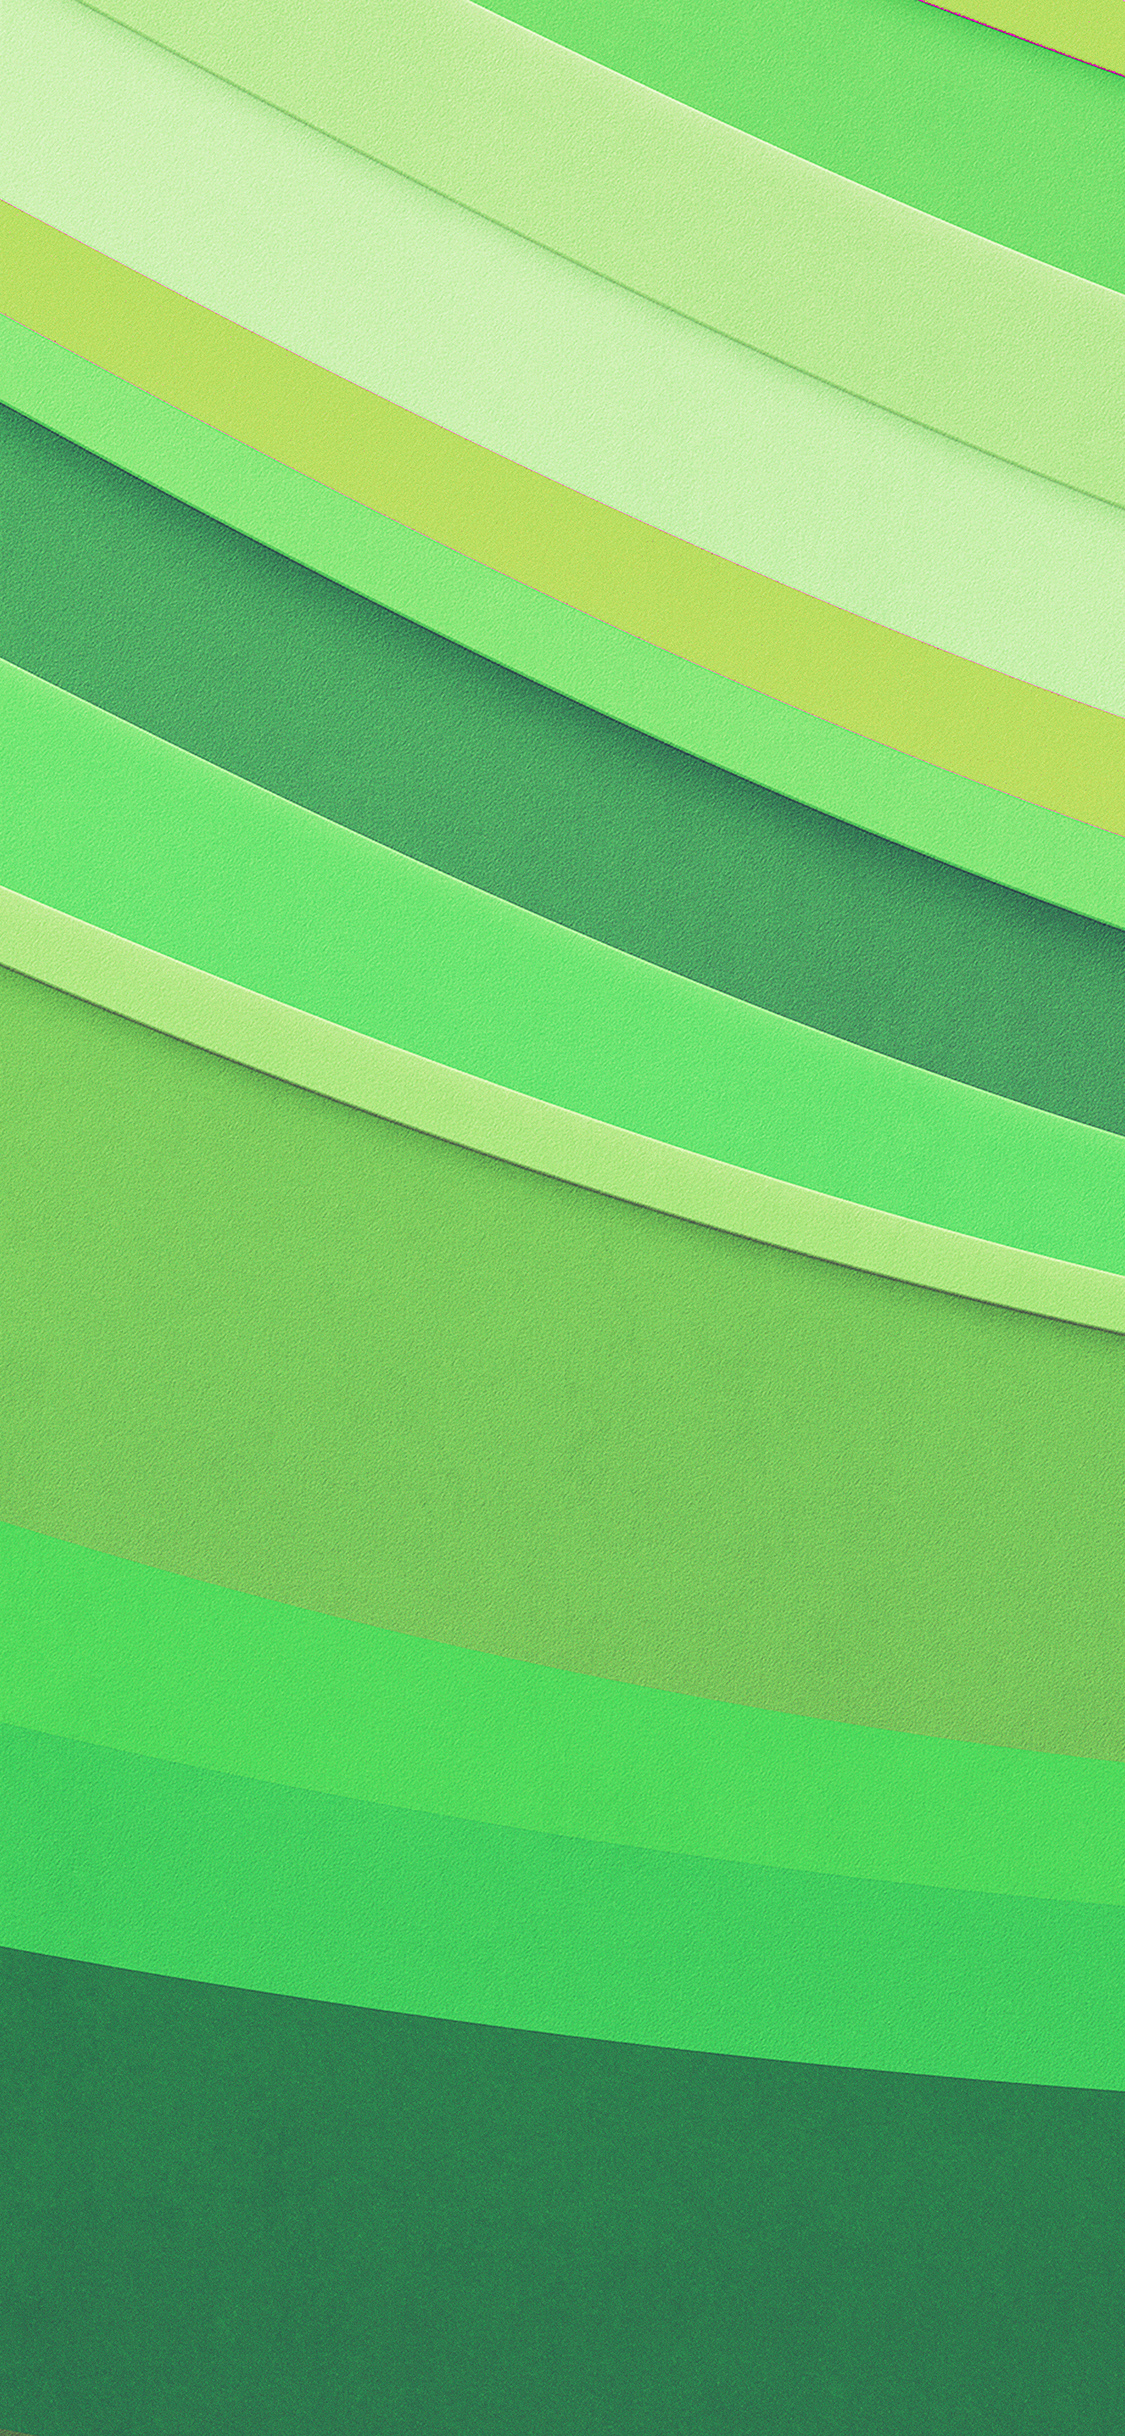 iPhoneXpapers.com-Apple-iPhone-wallpaper-vh48-sea-abstract-green-graphic-art-pattern